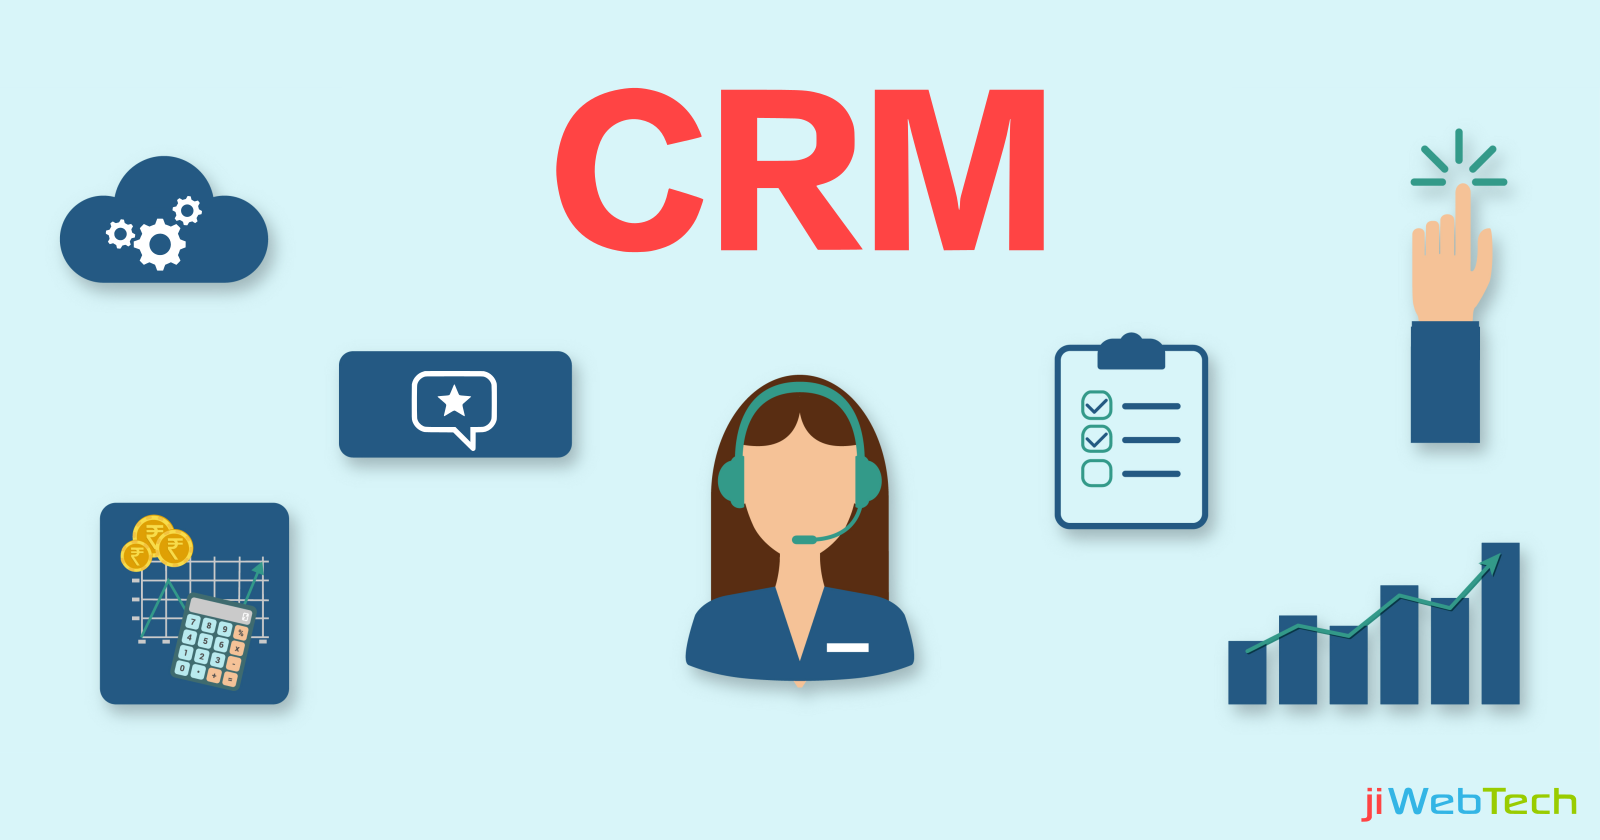 Be Aware and Cautious While You Choose Your CRM!